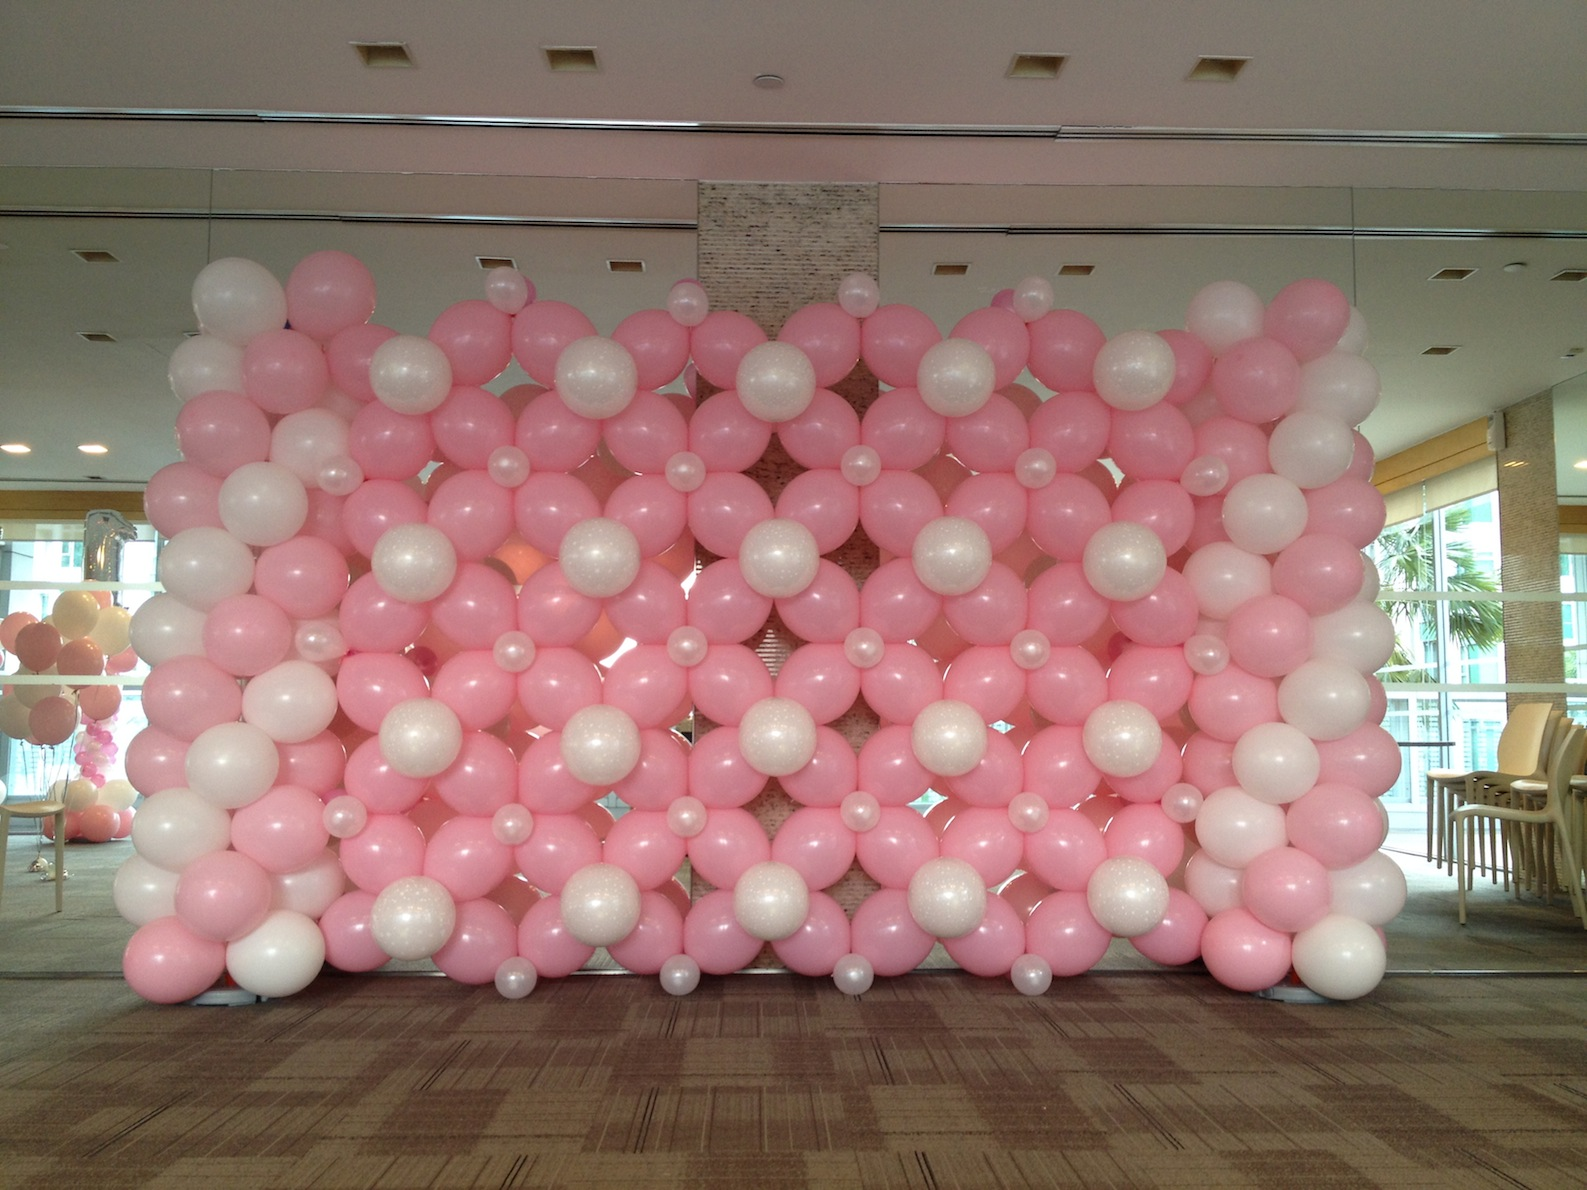 Basic balloon backdrop that balloons for Decoration images